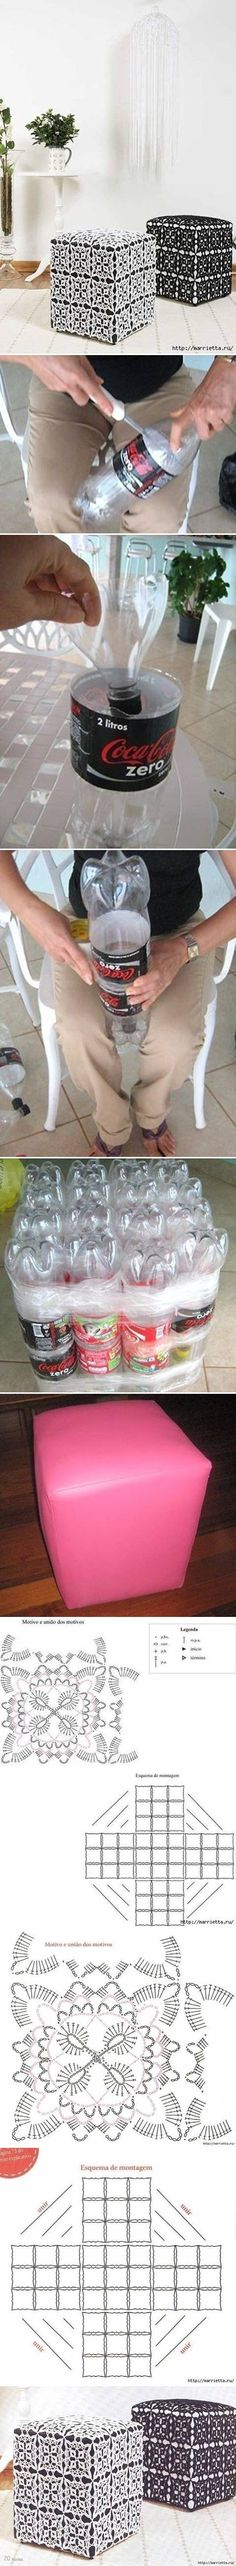 DIY Ottoman Out of Plastic Bottles 286